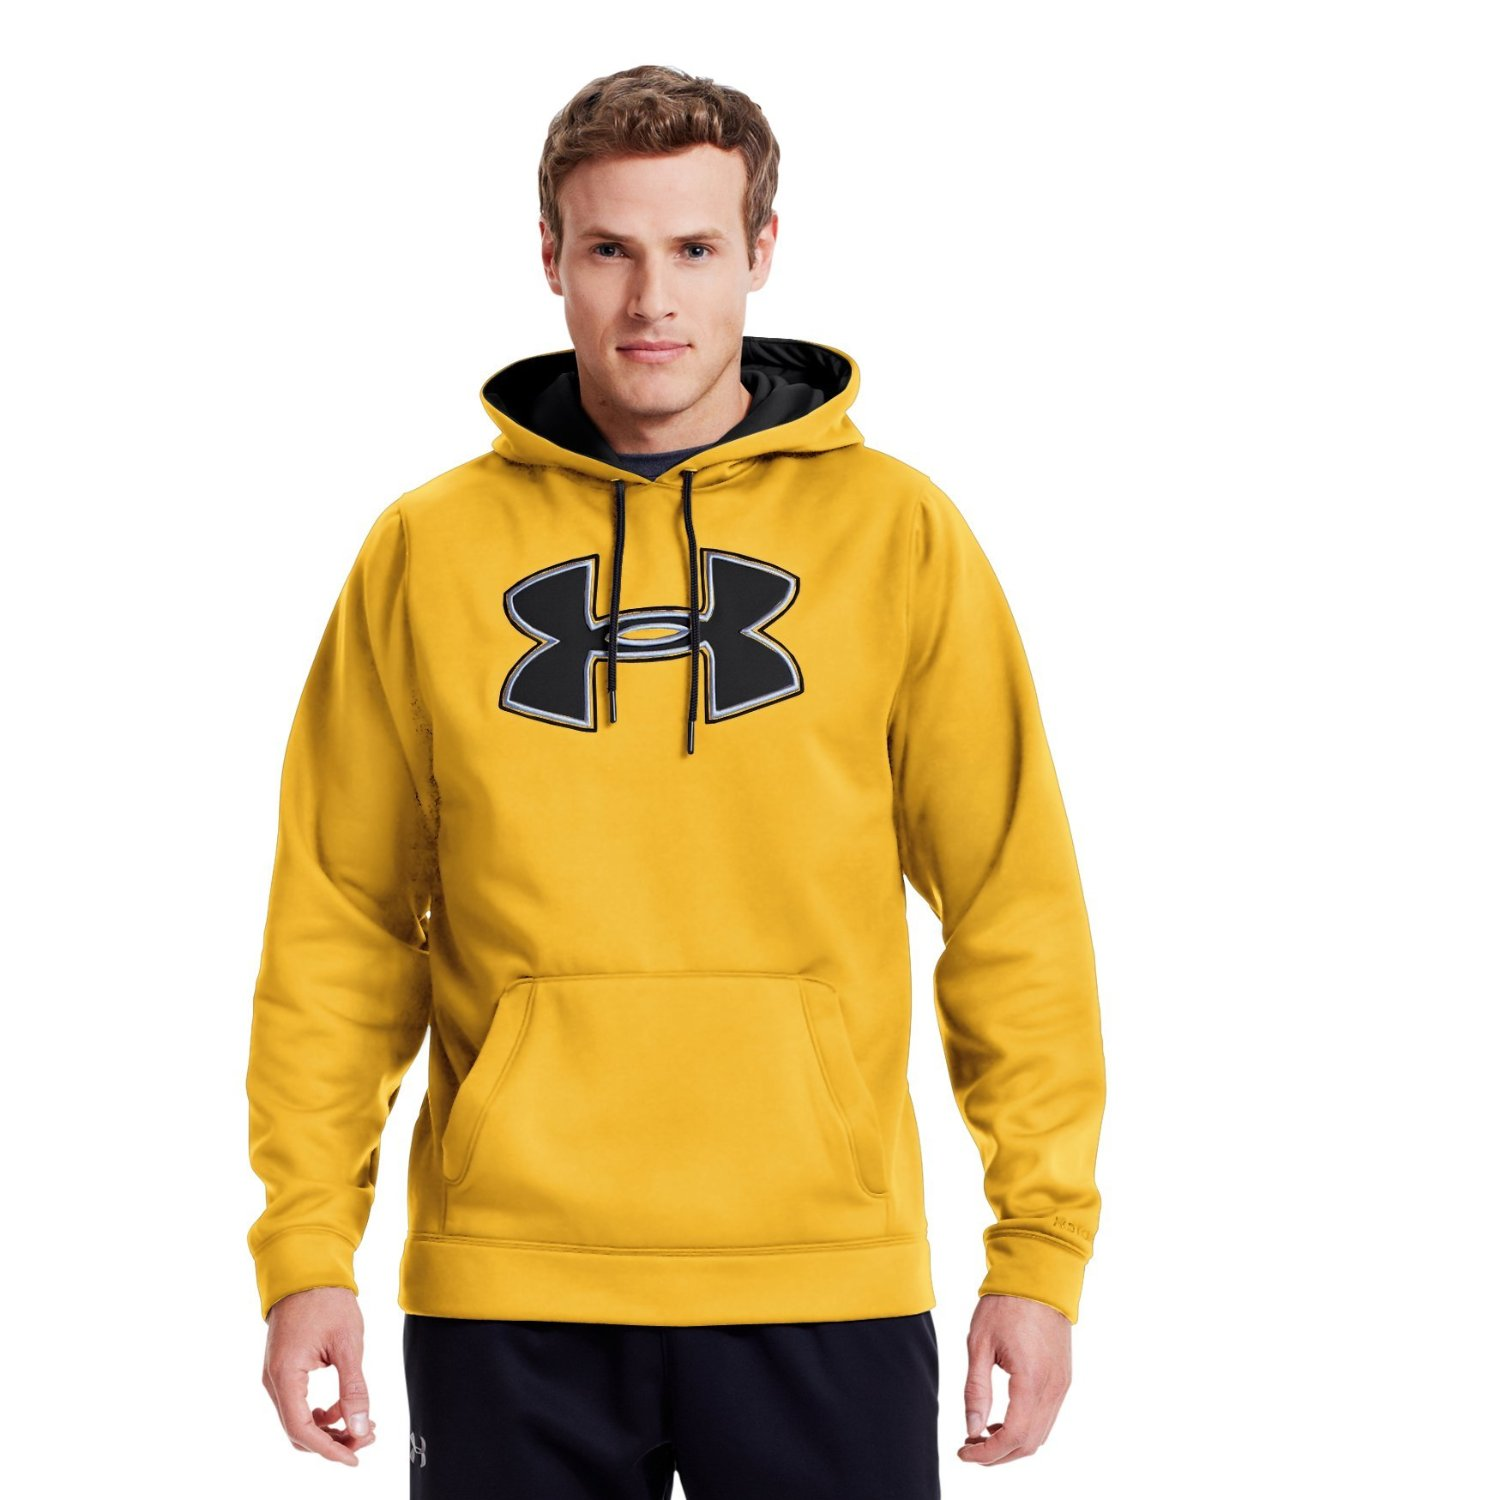 Shop for yellow pullover hoodie online at Target. Free shipping on purchases over $35 and save 5% every day with your Target REDcard.